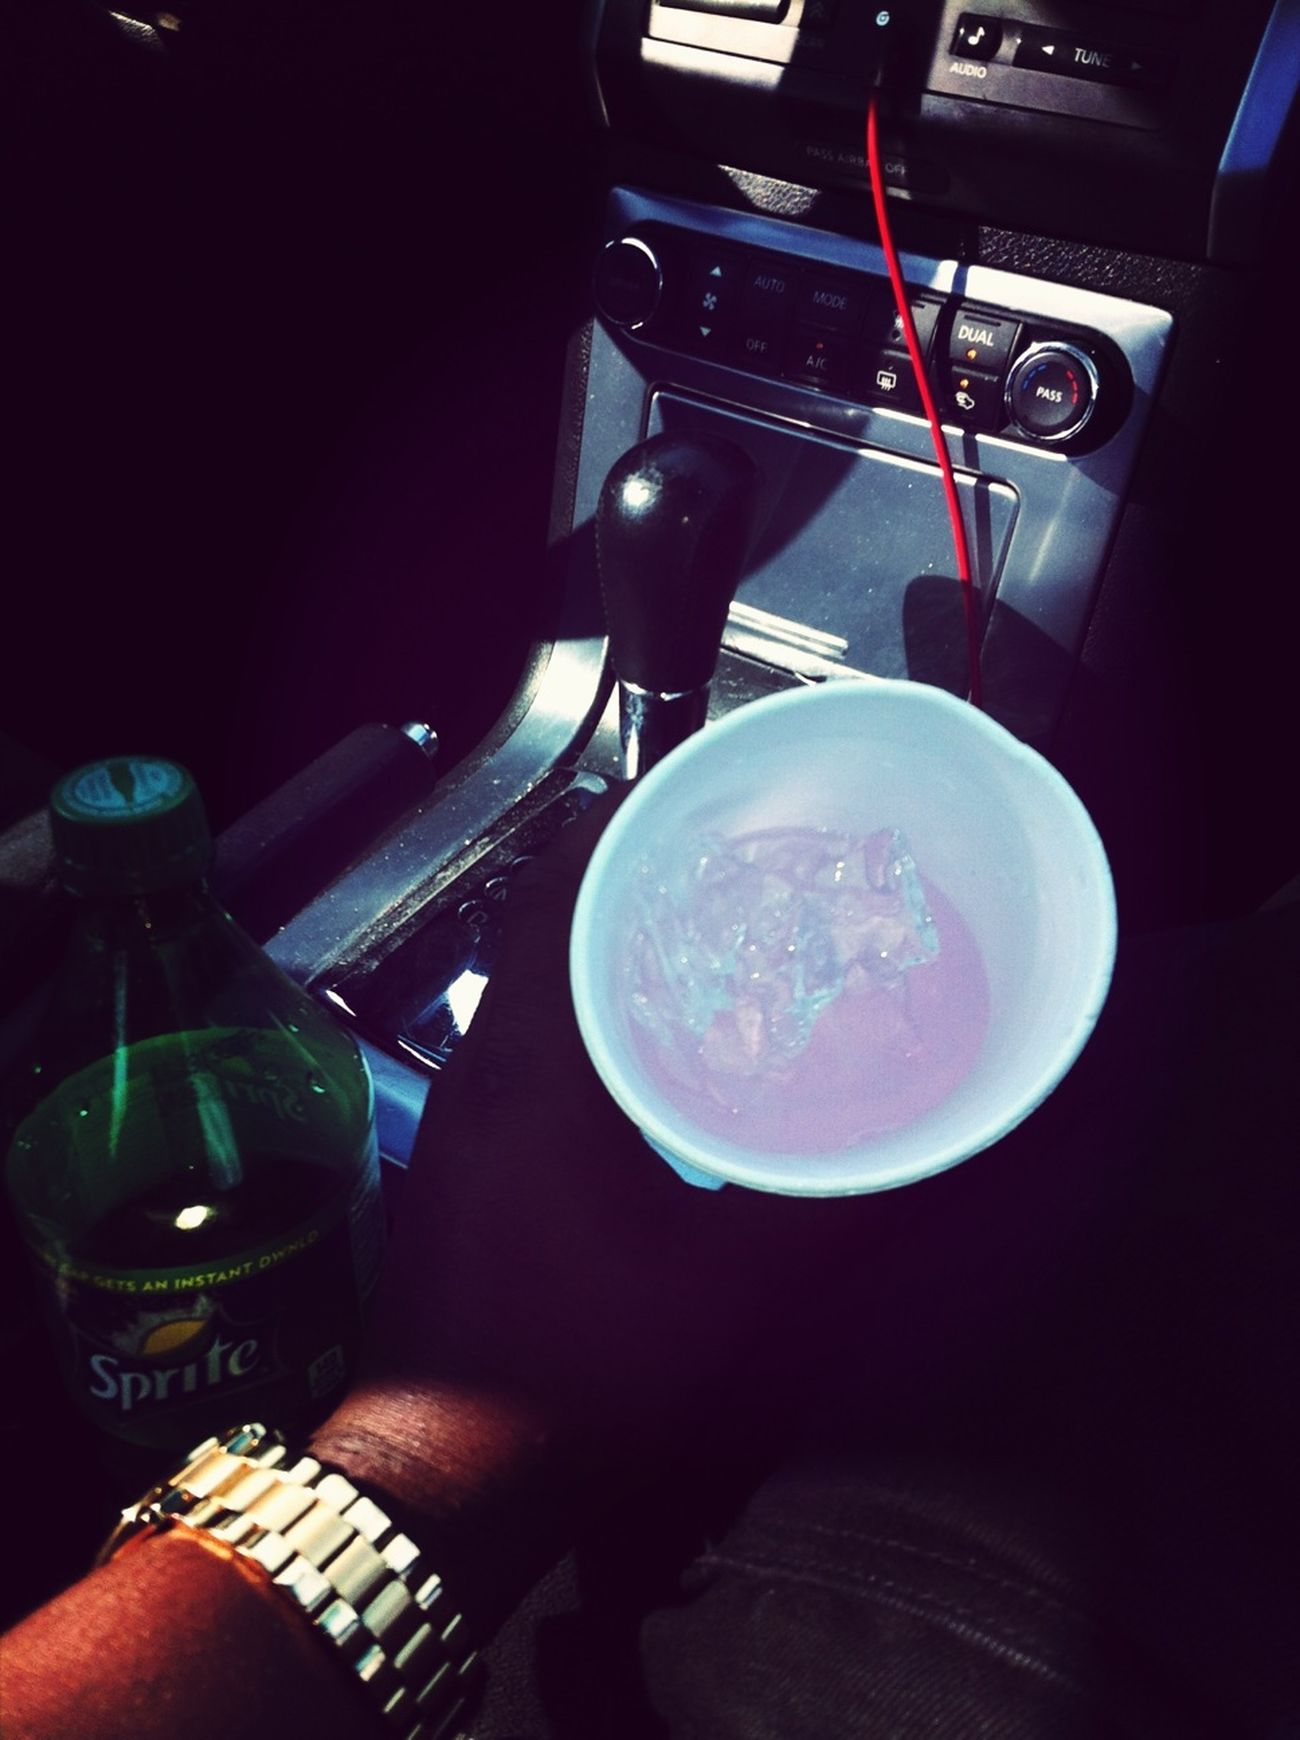 Got damn that boy drink muddy American Gangster